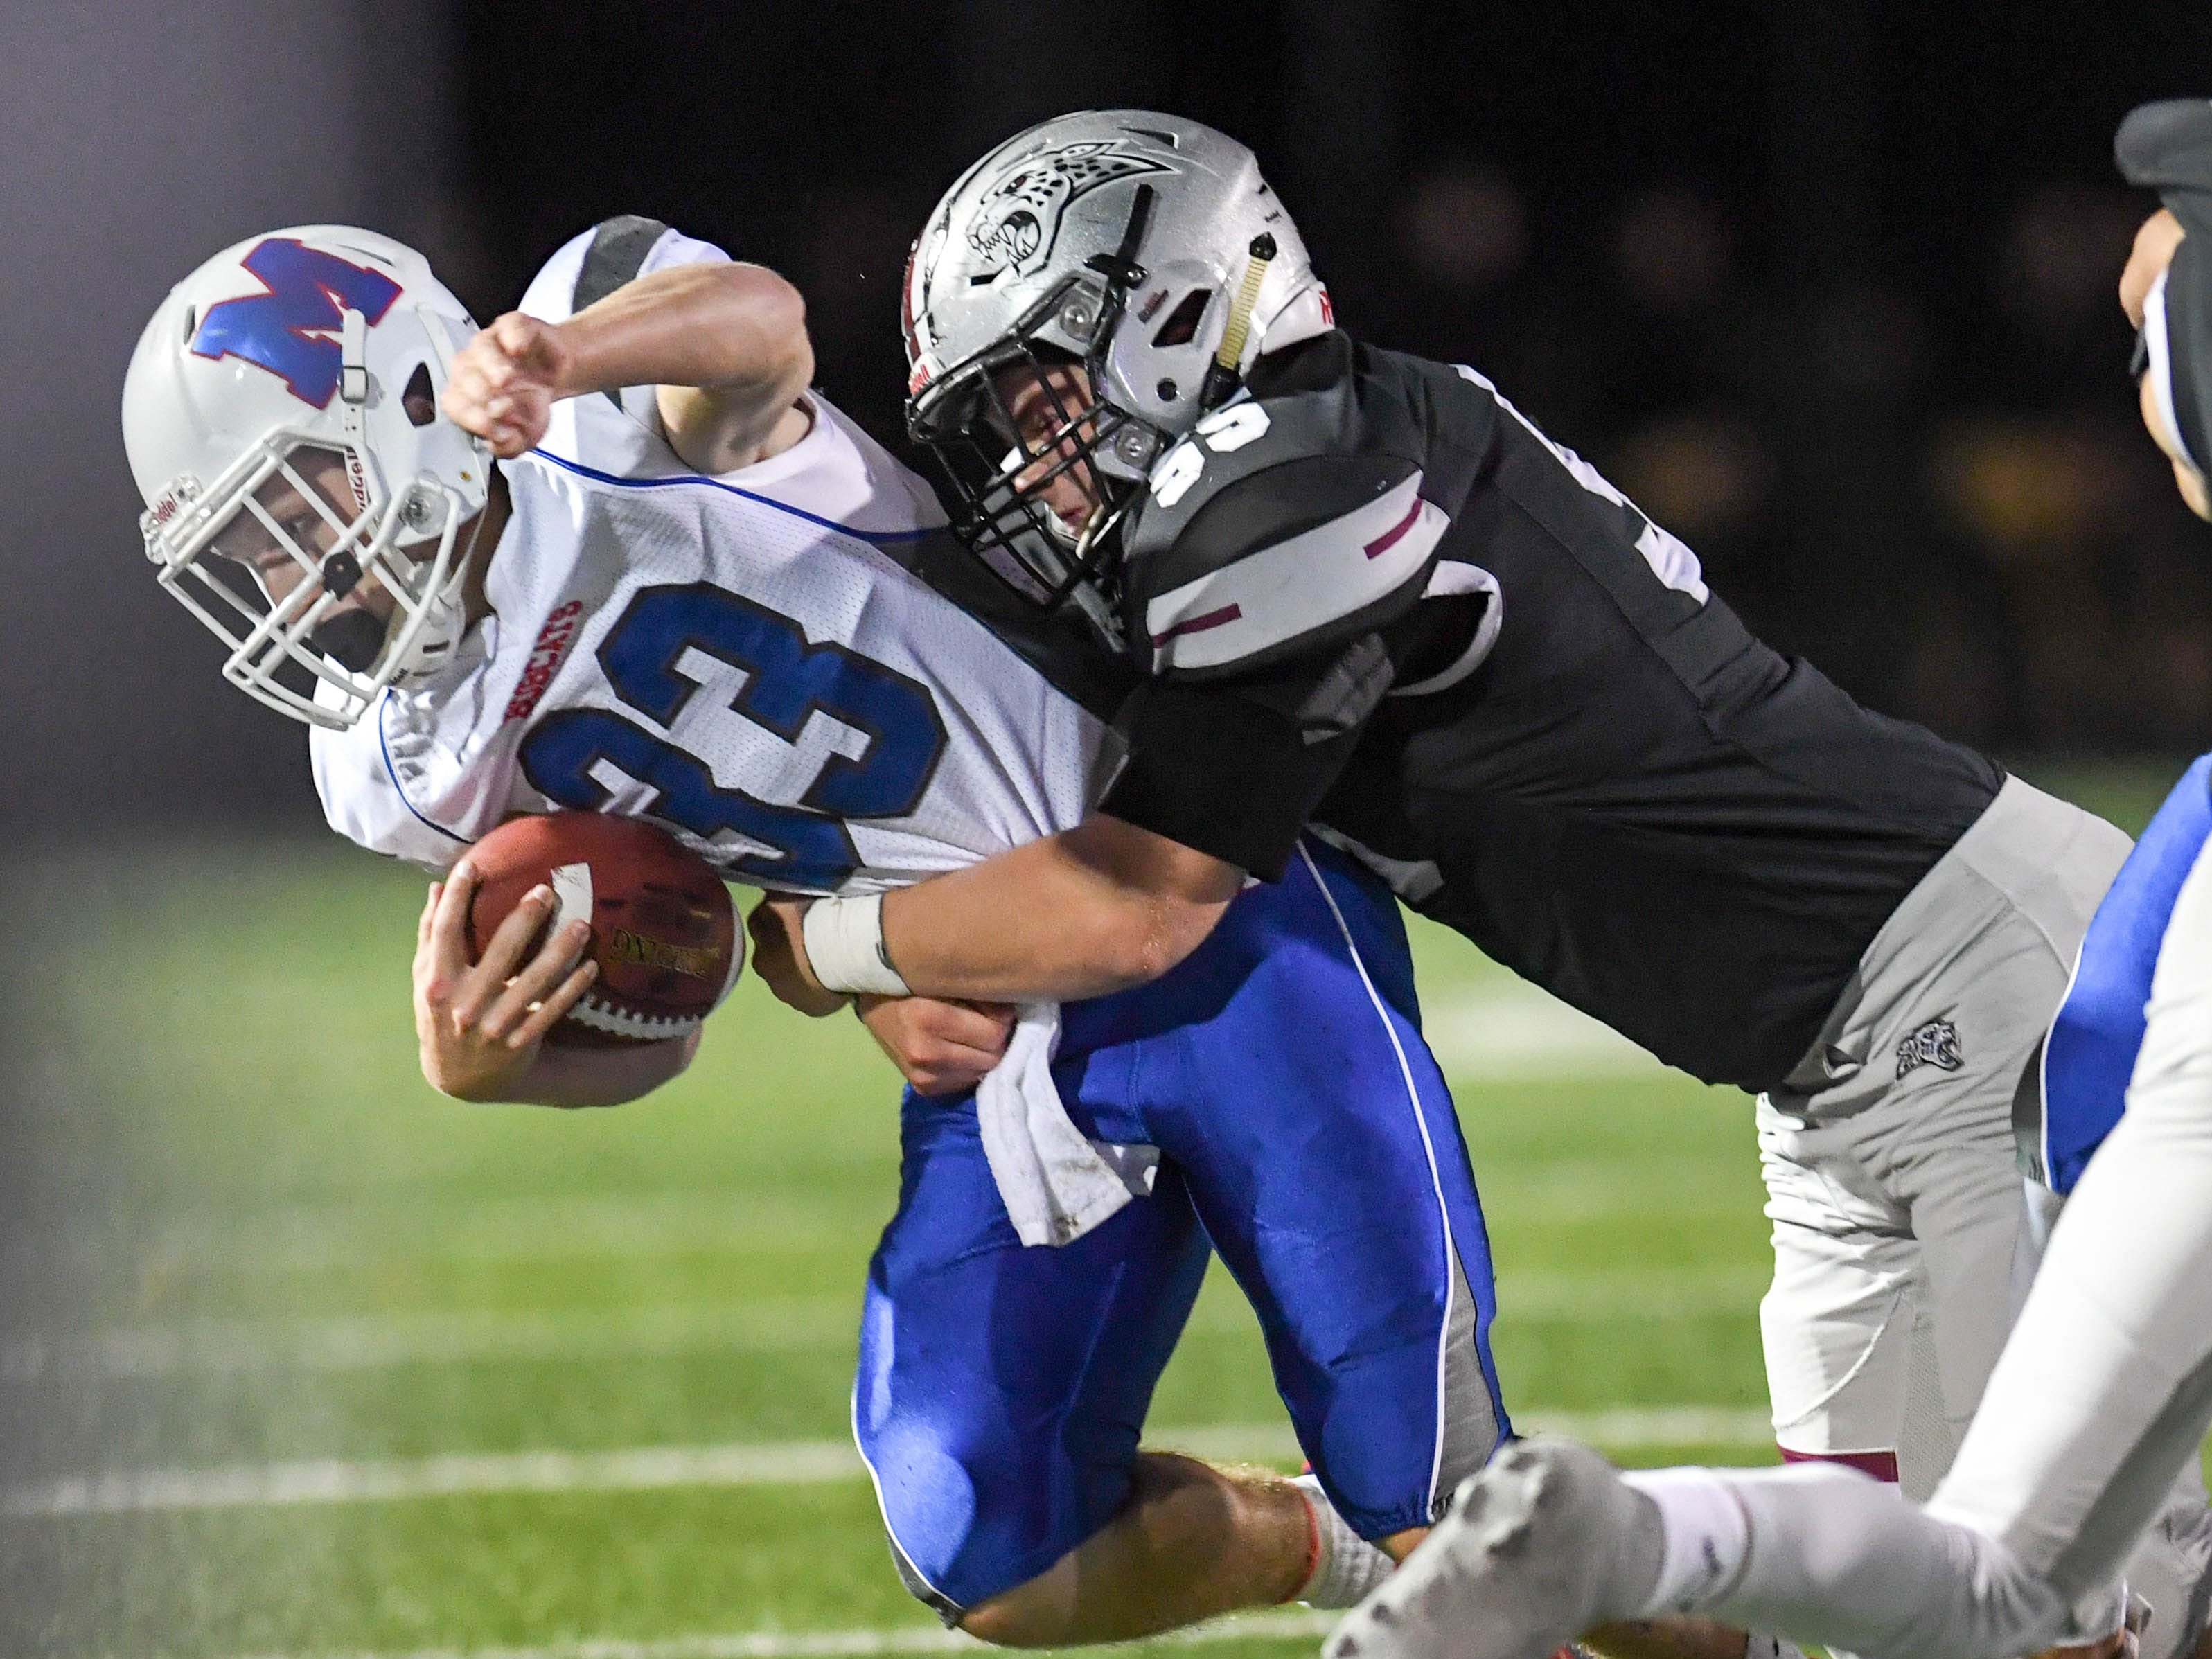 Ankeny Centennial's Ethan Frazier (55) tackles Marshalltown's Giorgio Dilorio (33) on Friday, Sept. 21, 2018 during a football game between the Ankeny Centennial Jaguars and the Marshalltown Bobcats at Northview Middle School.